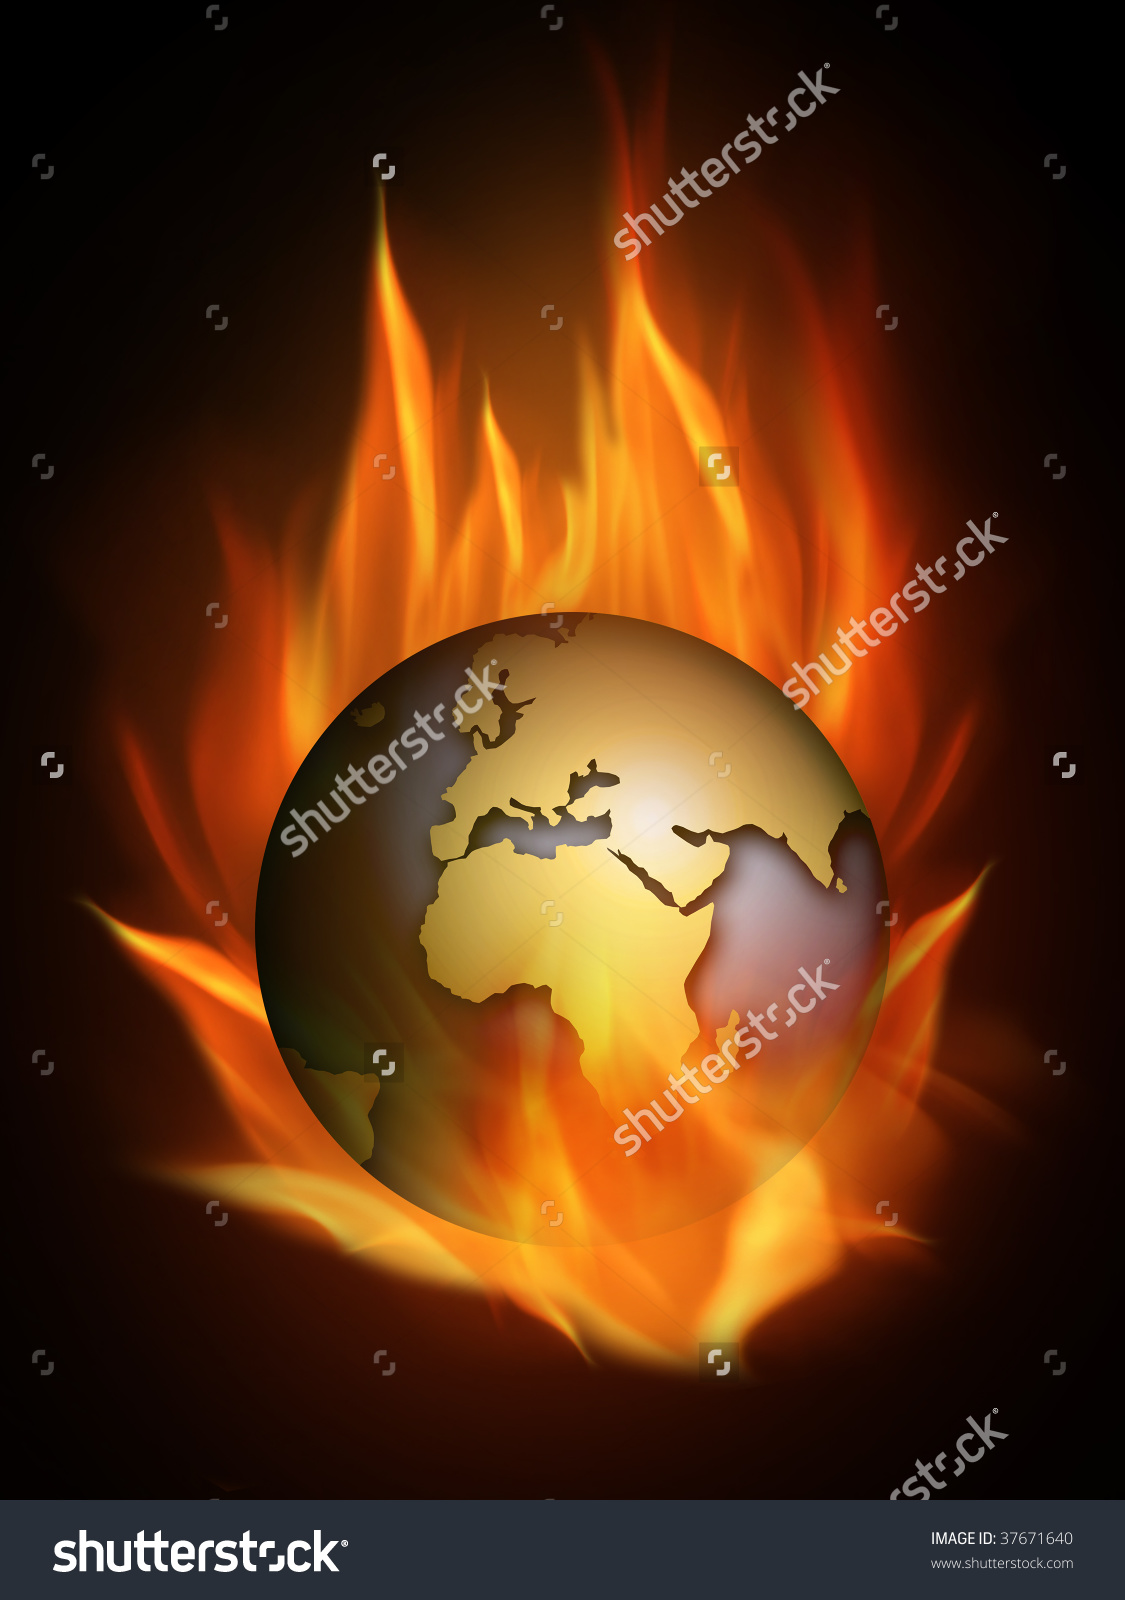 Hot Burning World Many Flames Stock Illustration 37671640.